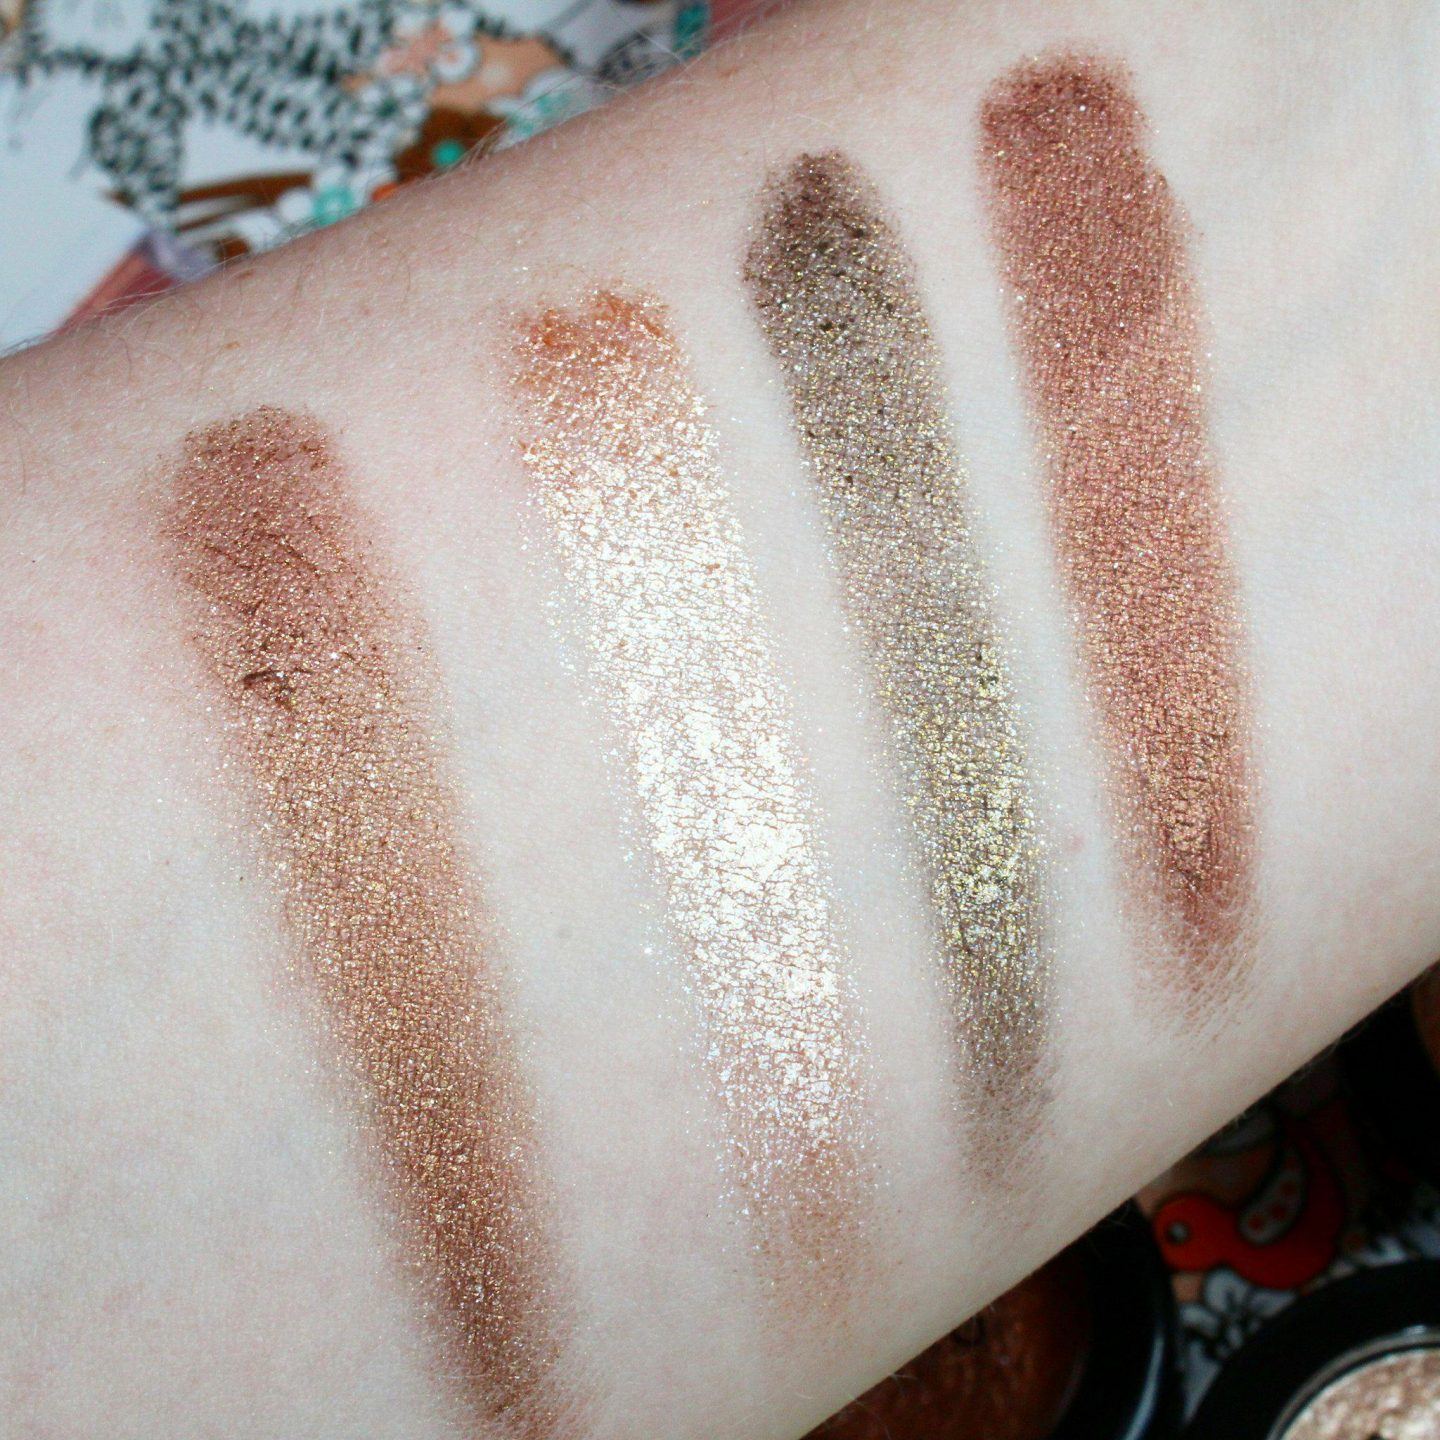 Phase Zero Makeup | Metal Foil Eyeshadows (£5 Off Discount Code) Swatches